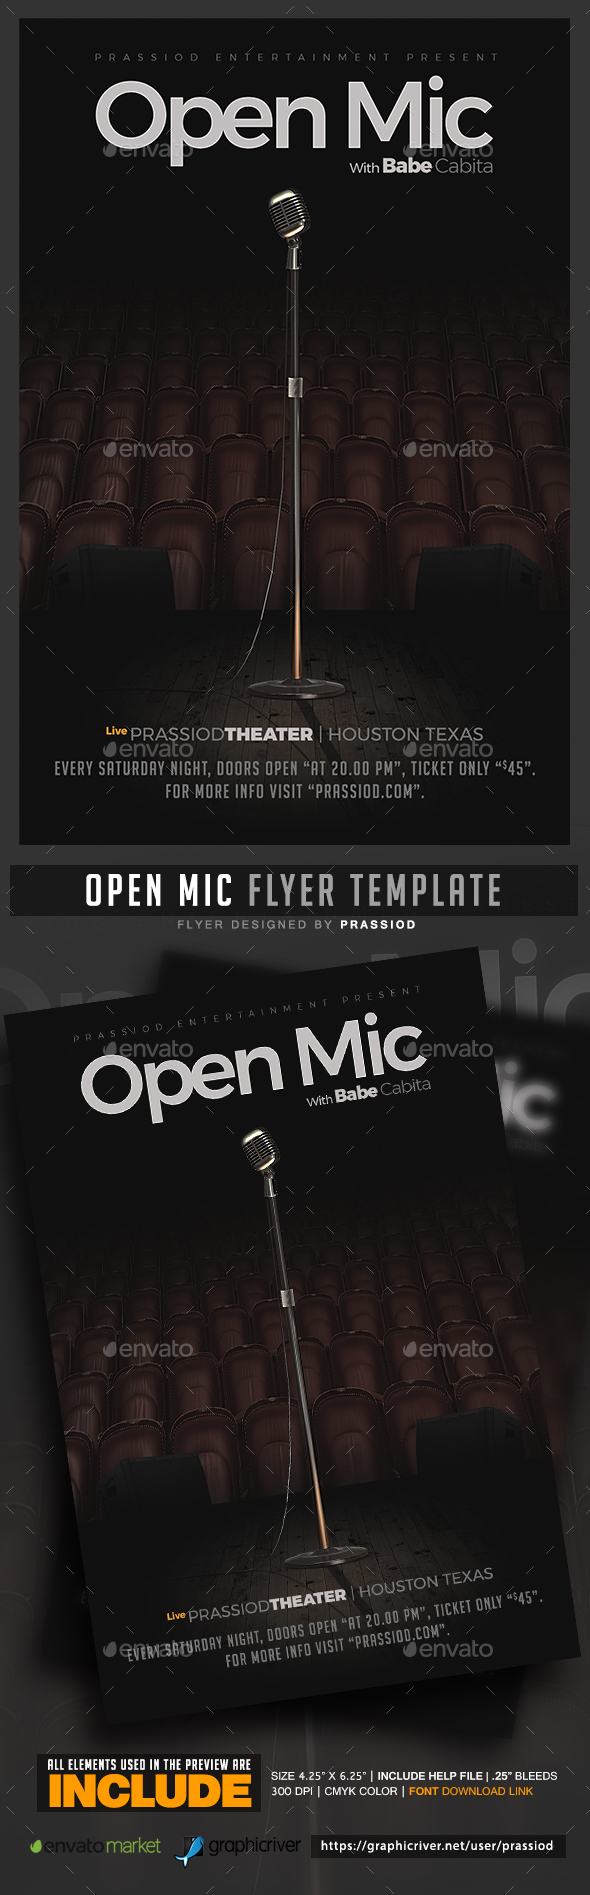 Open Mic Flyer Template - Clubs & Parties Events